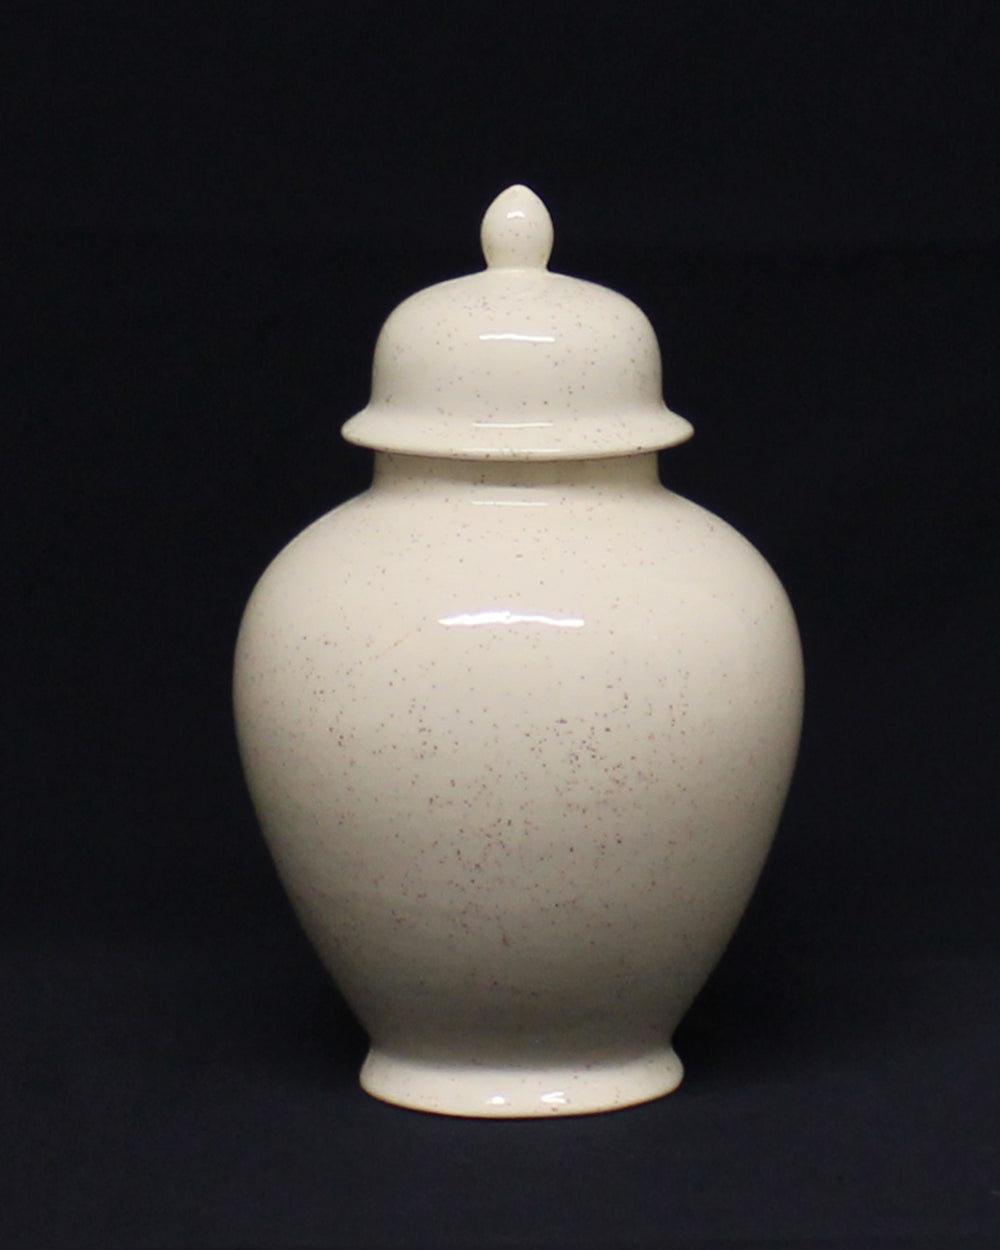 Hancrafted Ceramic Urn - Speckled - Medium